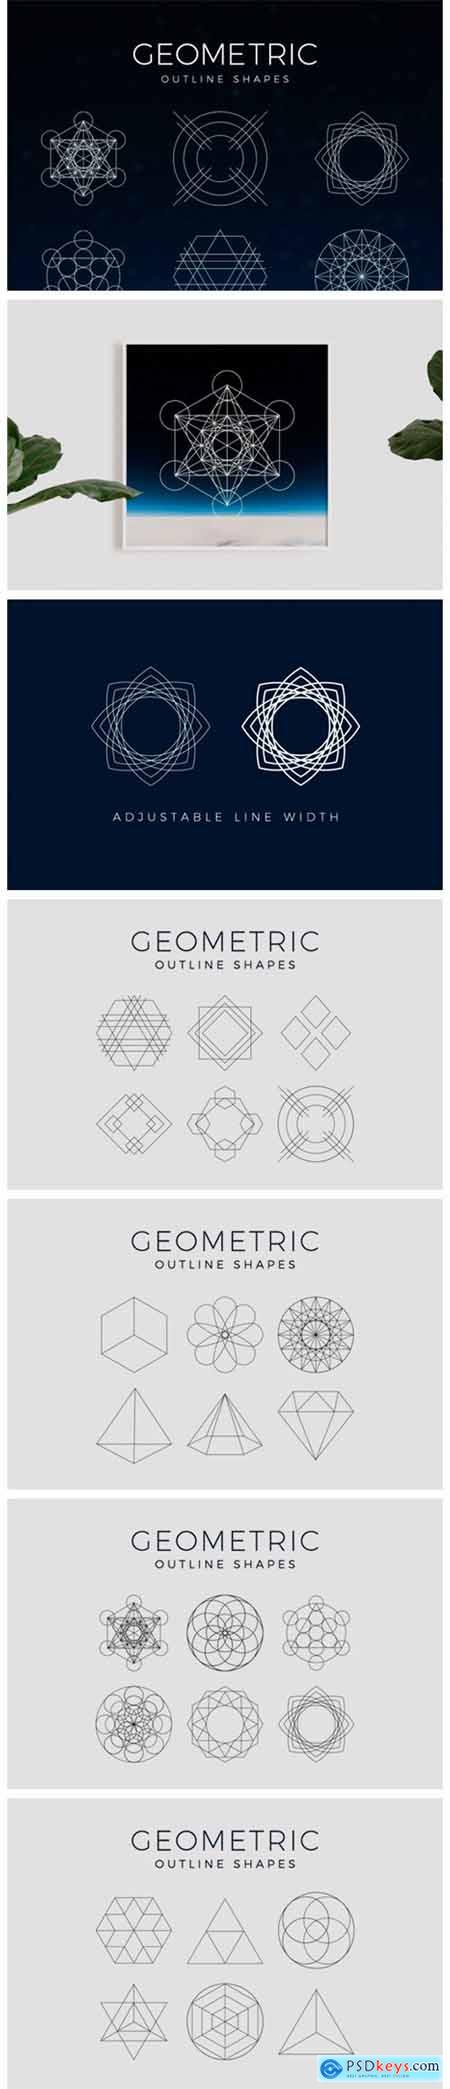 Geometric Outline Clipart Shapes 5050774